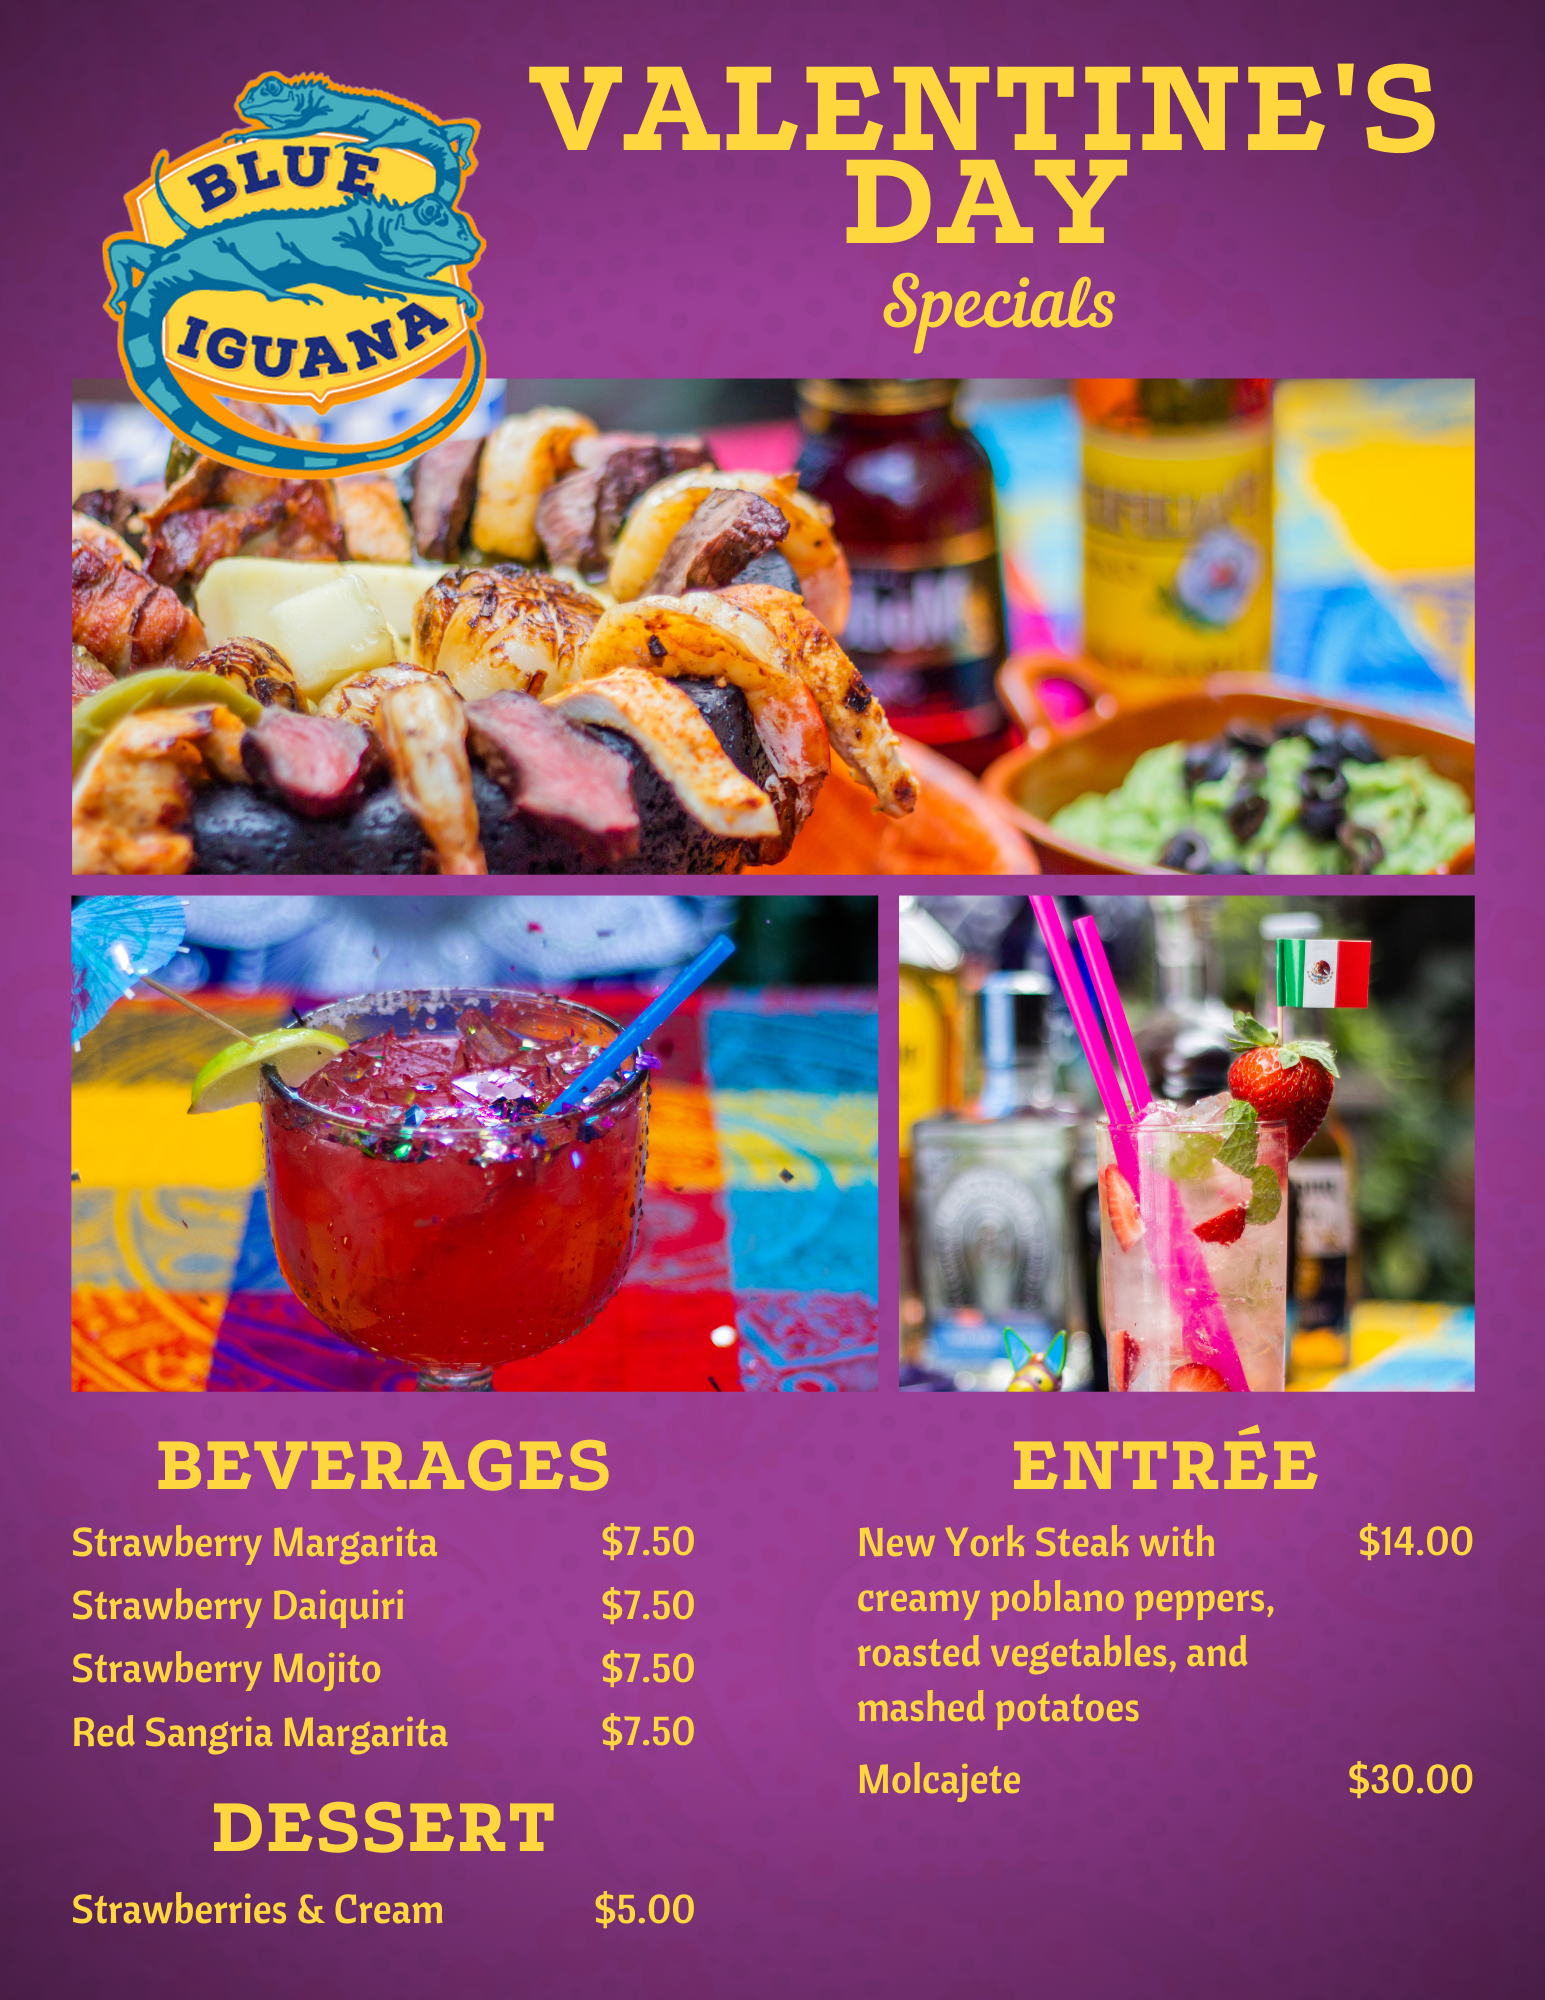 Blue Iguana Holiday Specials Menu